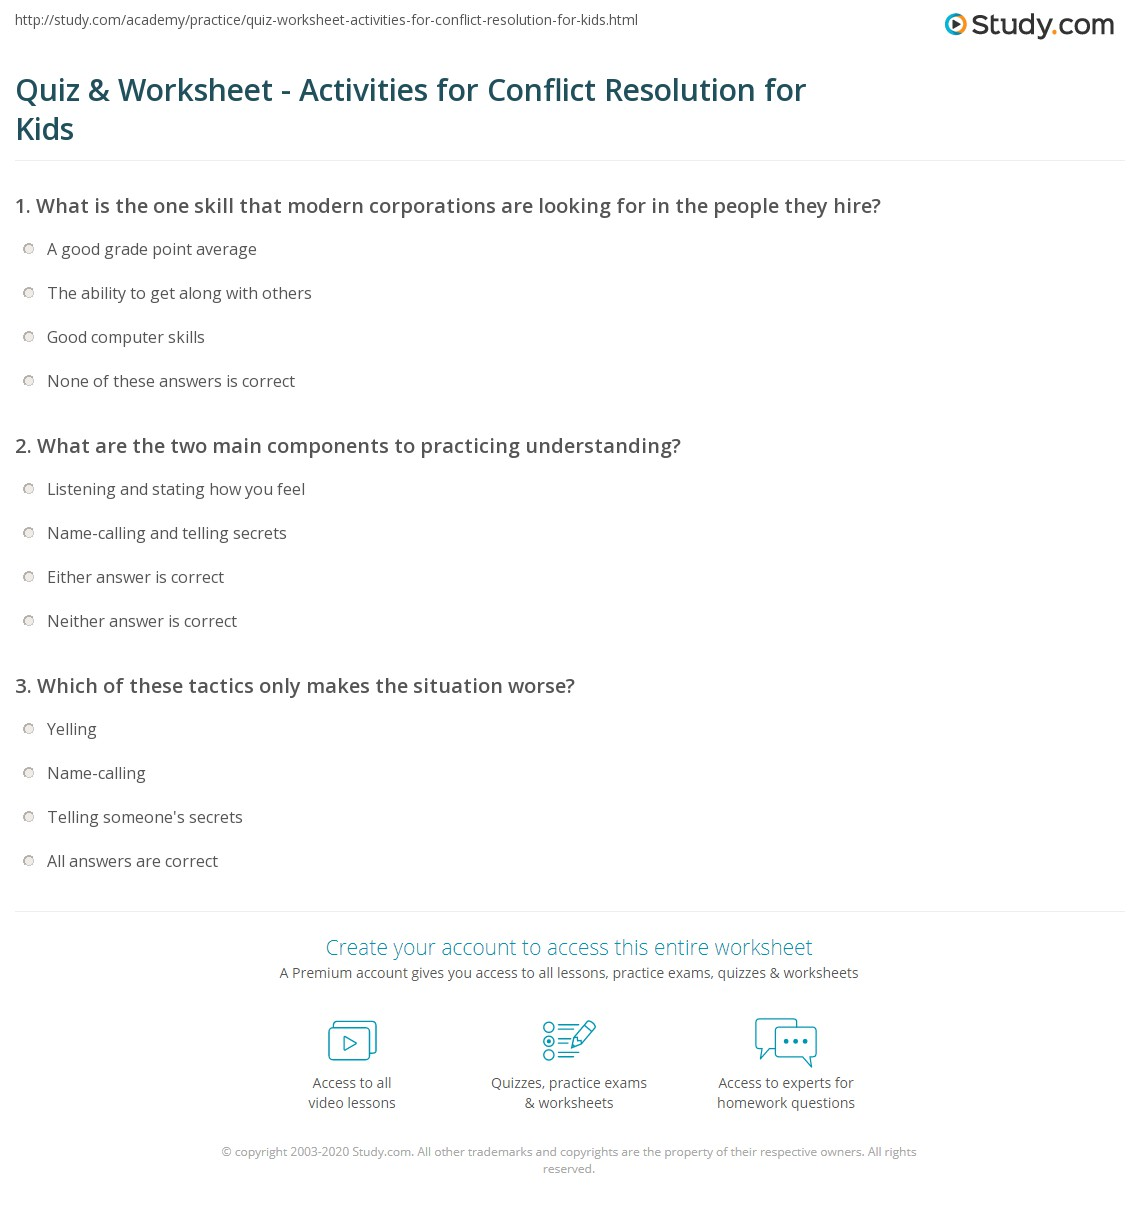 Conflict Resolution Worksheet by The Sucos   Teachers Pay Teachers furthermore Main Idea Practice Worksheets Free Conflict For High Literary furthermore Quiz   Worksheet   Activities for Conflict Resolution for Kids moreover Free Printable Literacy Worksheets For Adults Free Printable besides r Conflict Resolution Worksheets   Free Printables Worksheet likewise  moreover Conflict Resolution Coloring Pages Amazing Conflict Resolution further Leadership Worksheets For Students Kids Preers To Write Their likewise Conflict Resolution Worksheets For Kids Promoting Worksheets For 2nd together with Conflict Resolution Coloring Pages Amazing Fabulous Worksheet likewise Conflict And Resolution Worksheets   Lobo Black furthermore Relationship Conflict Resolution  Worksheet   Psychology   Conflict as well Conflict Resolution Coloring Pages Pretty Printable Worksheets likewise Ct Resolution Worksheets For Middle Relationship Works Essay furthermore Conflict resolution choices for social skills  Free conflict moreover Leadership Worksheets For Elementary Students Leadership Worksheets. on conflict resolution worksheets for adults